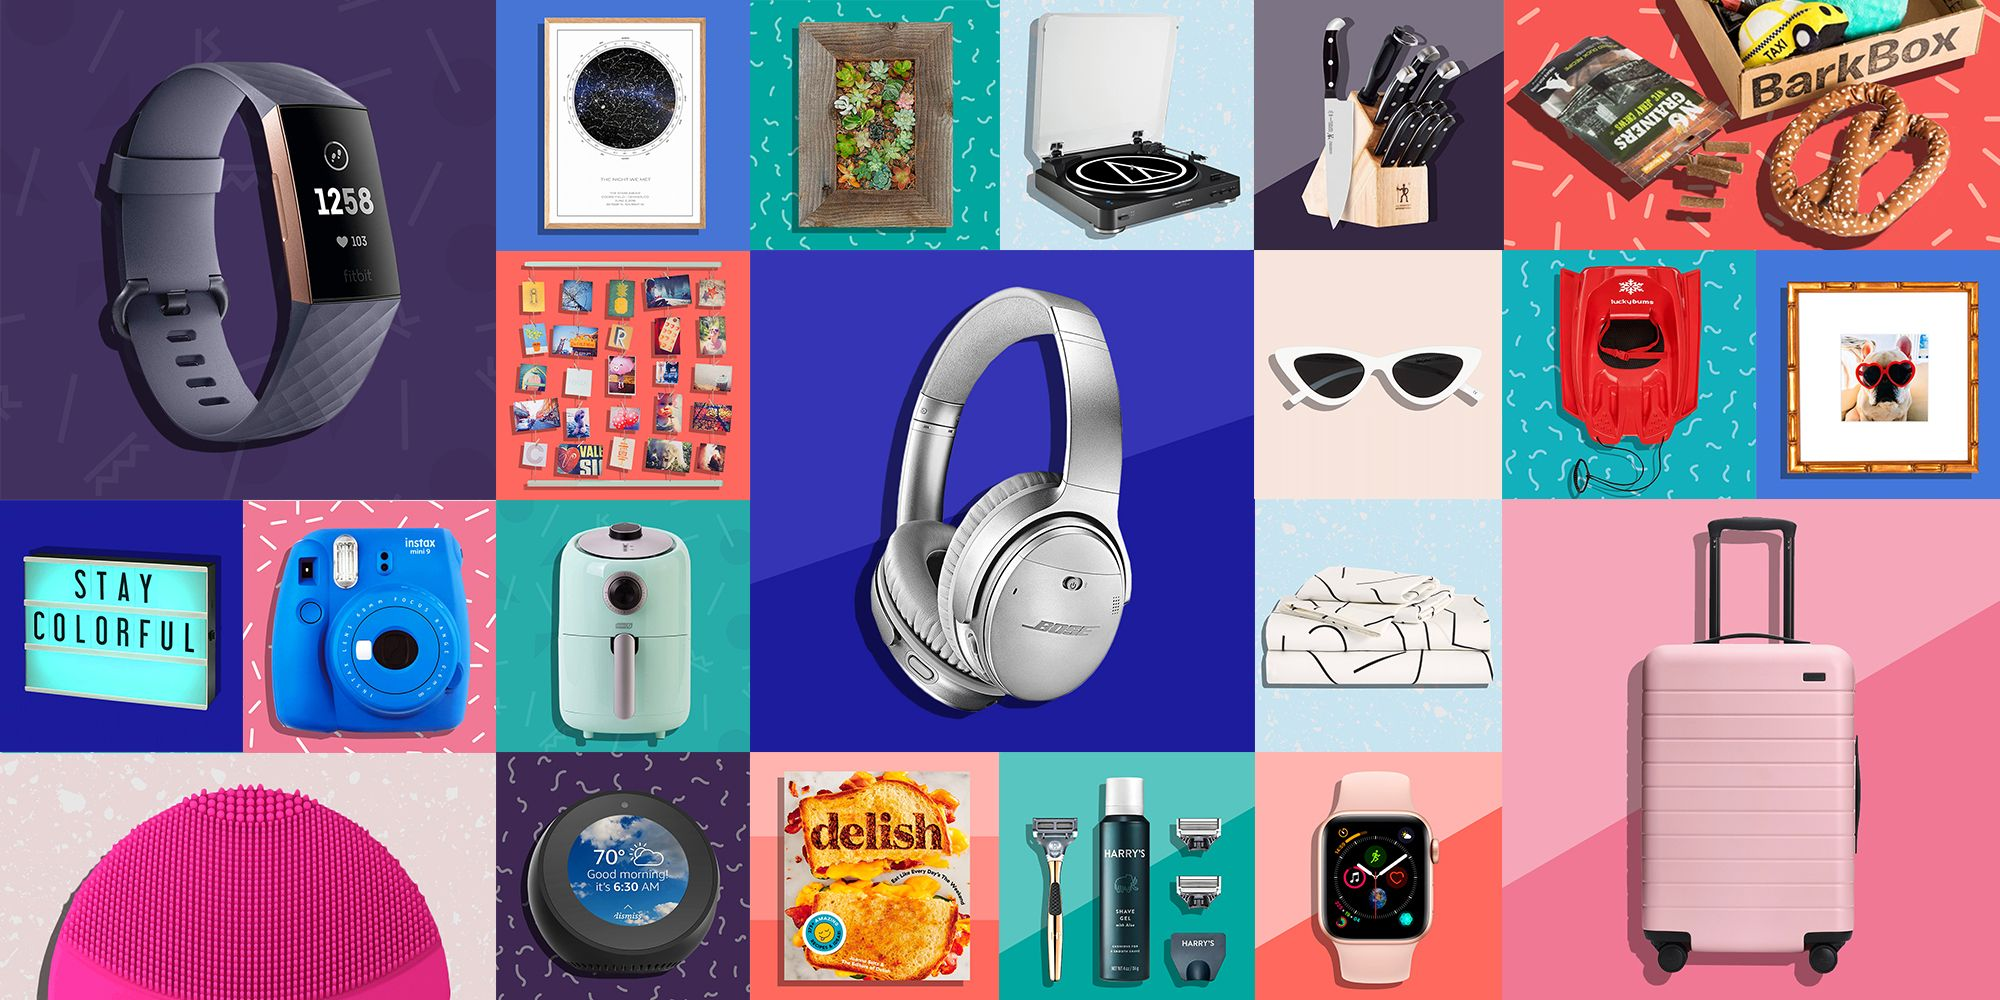 100+ Best <b>Christmas Gifts</b> of <b>2018</b> - Top Selling <b>Gift</b> Ideas for ...